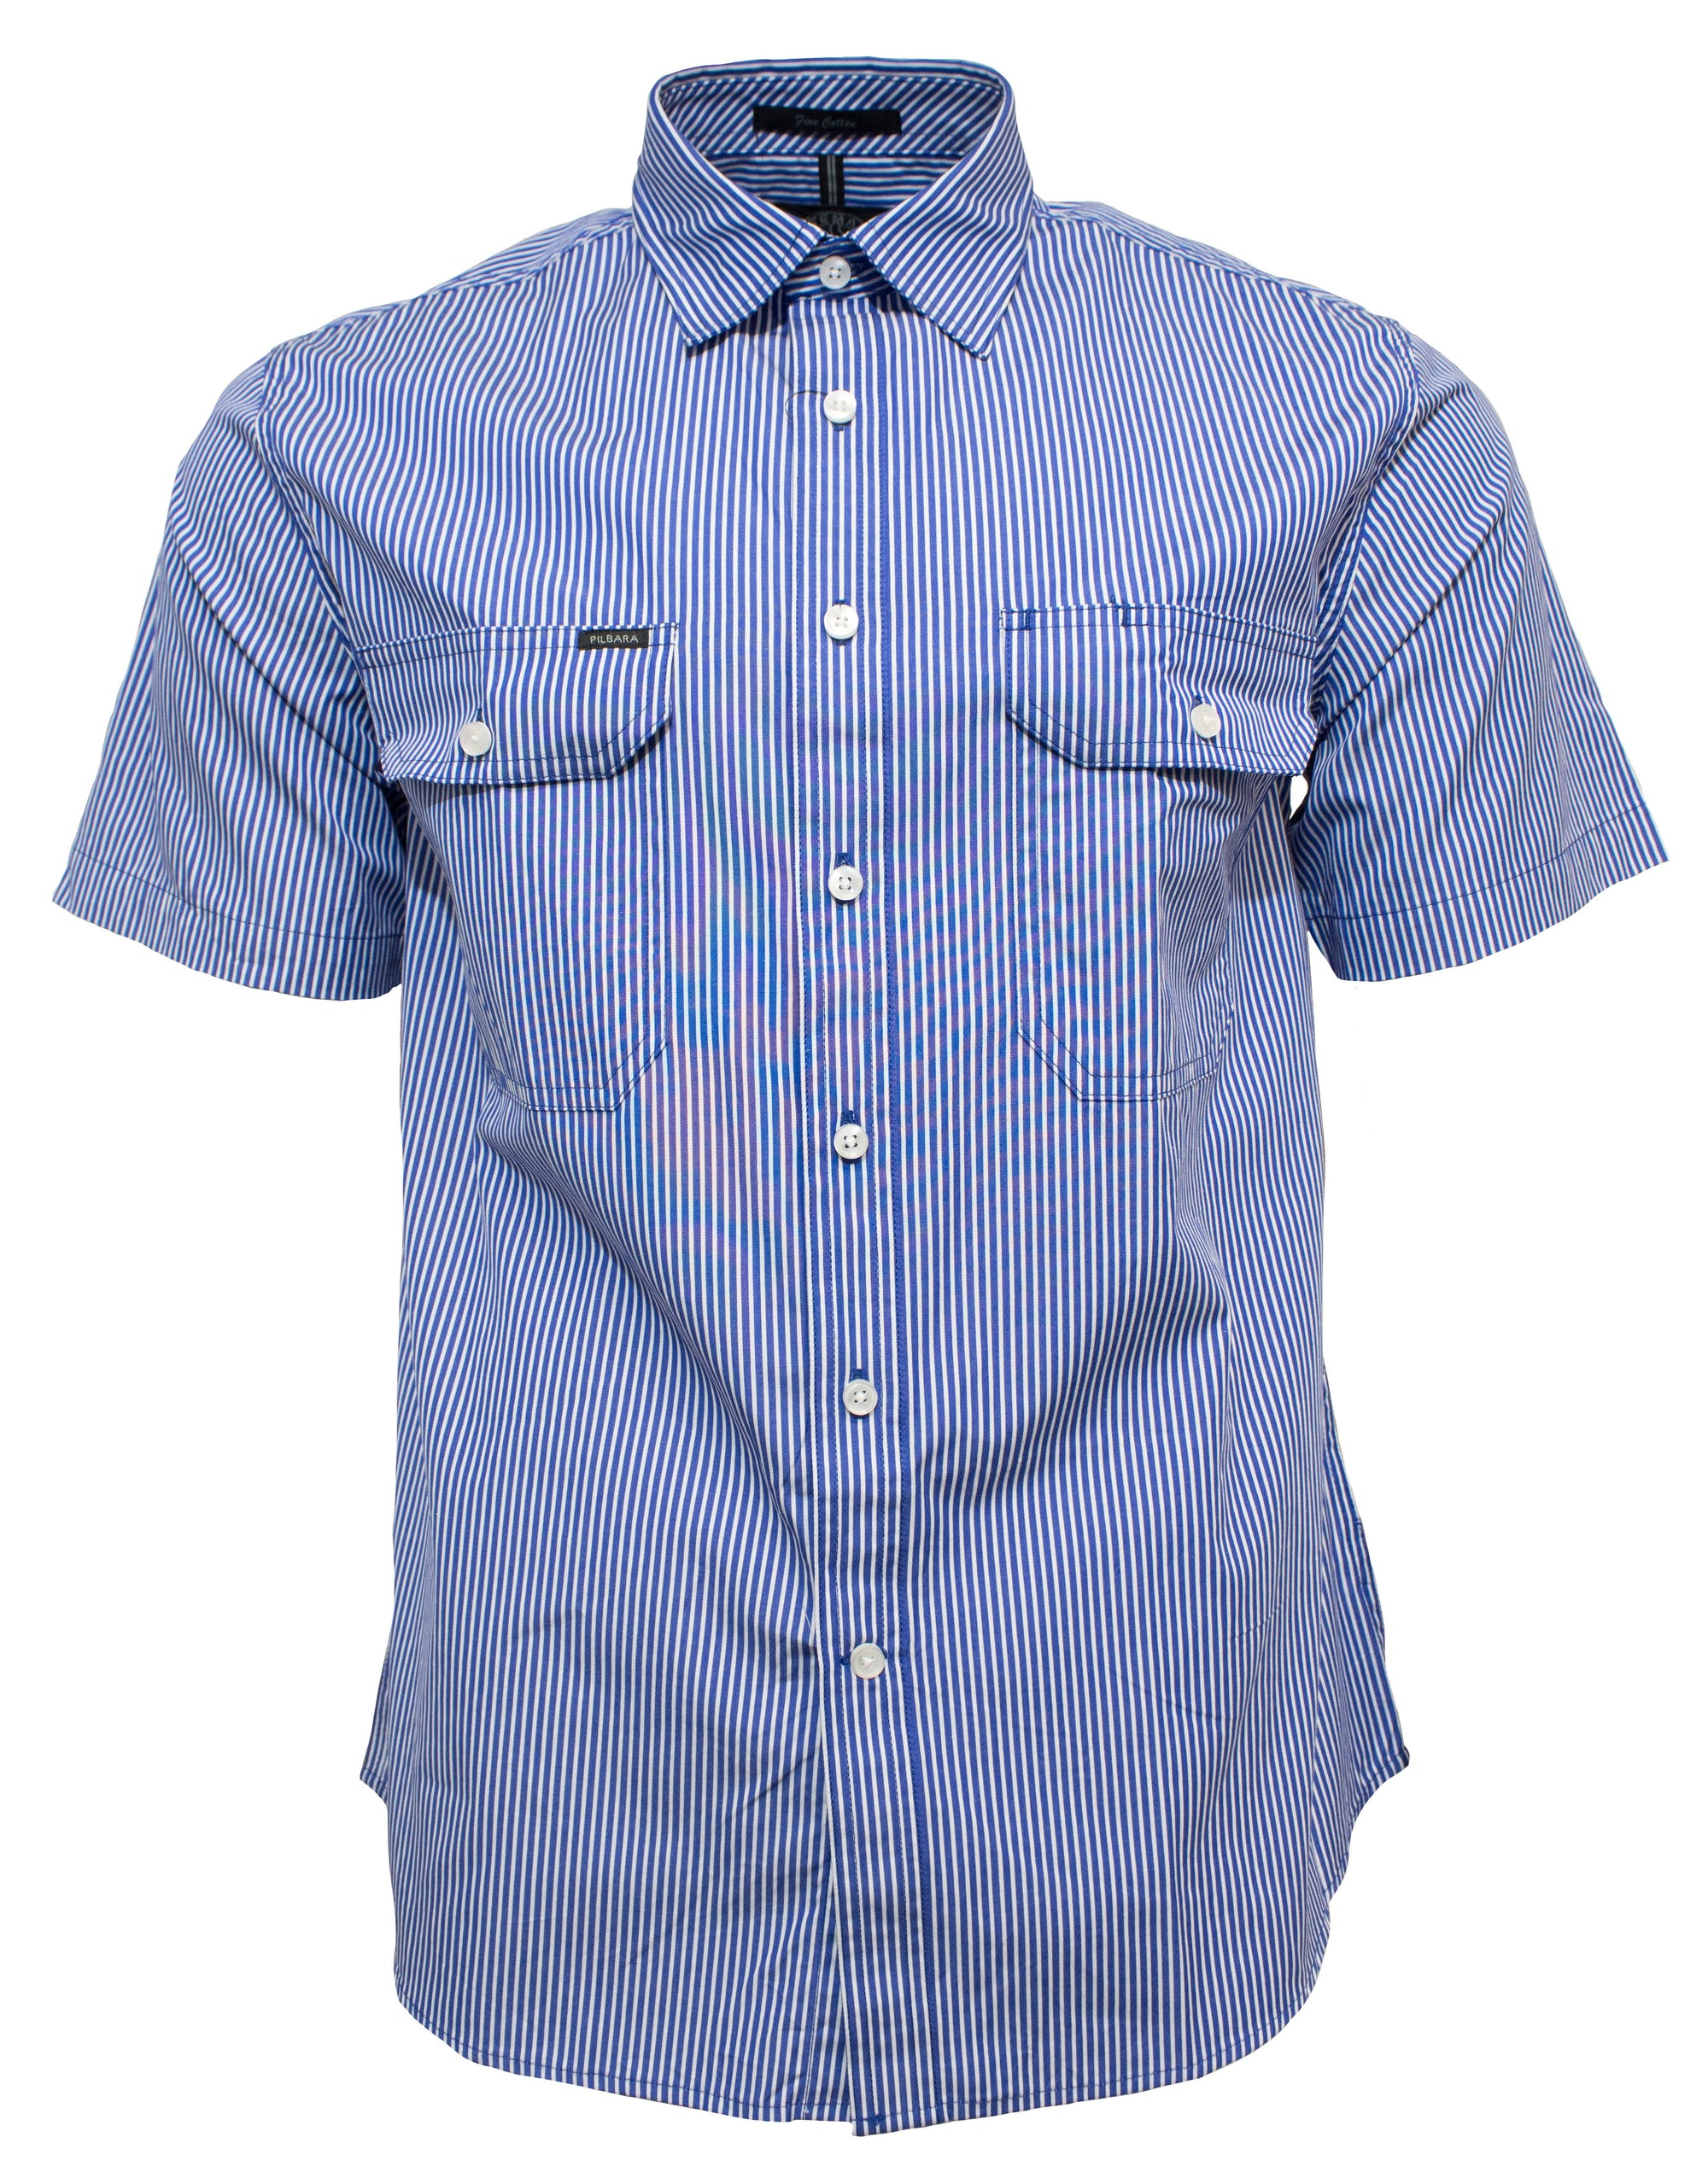 Ritemate Pilbara Short Sleeve Stripe Shirt (4498138857609)